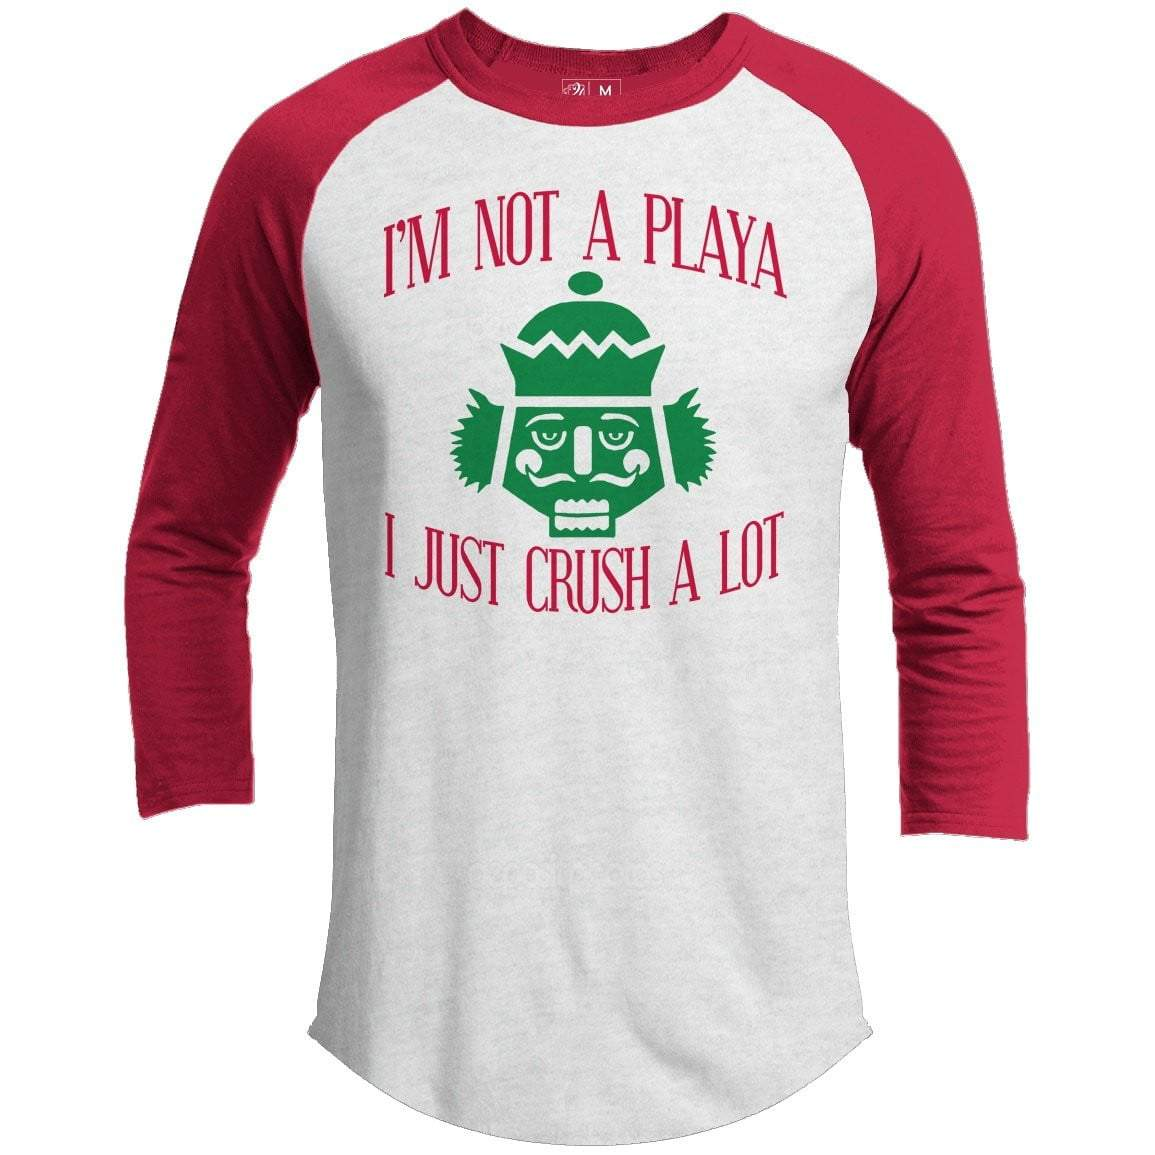 I'M NOT A PLAYA Premium Youth Christmas Raglan